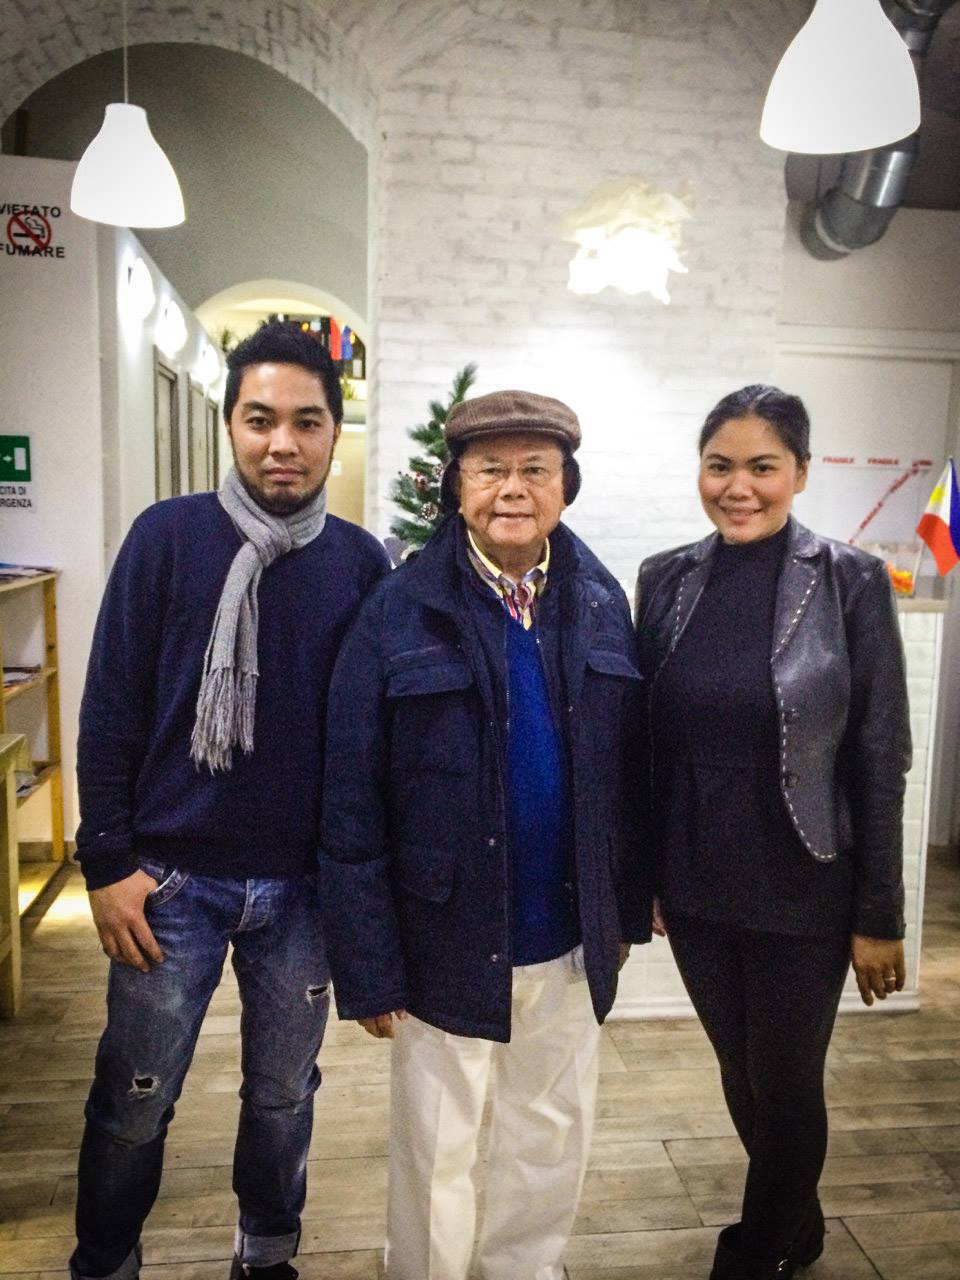 Claire Datu, right, with her co-owner and husband Reinnar, left, and a regular customer in their restaurant. (Photo courtesy Claire Datu)